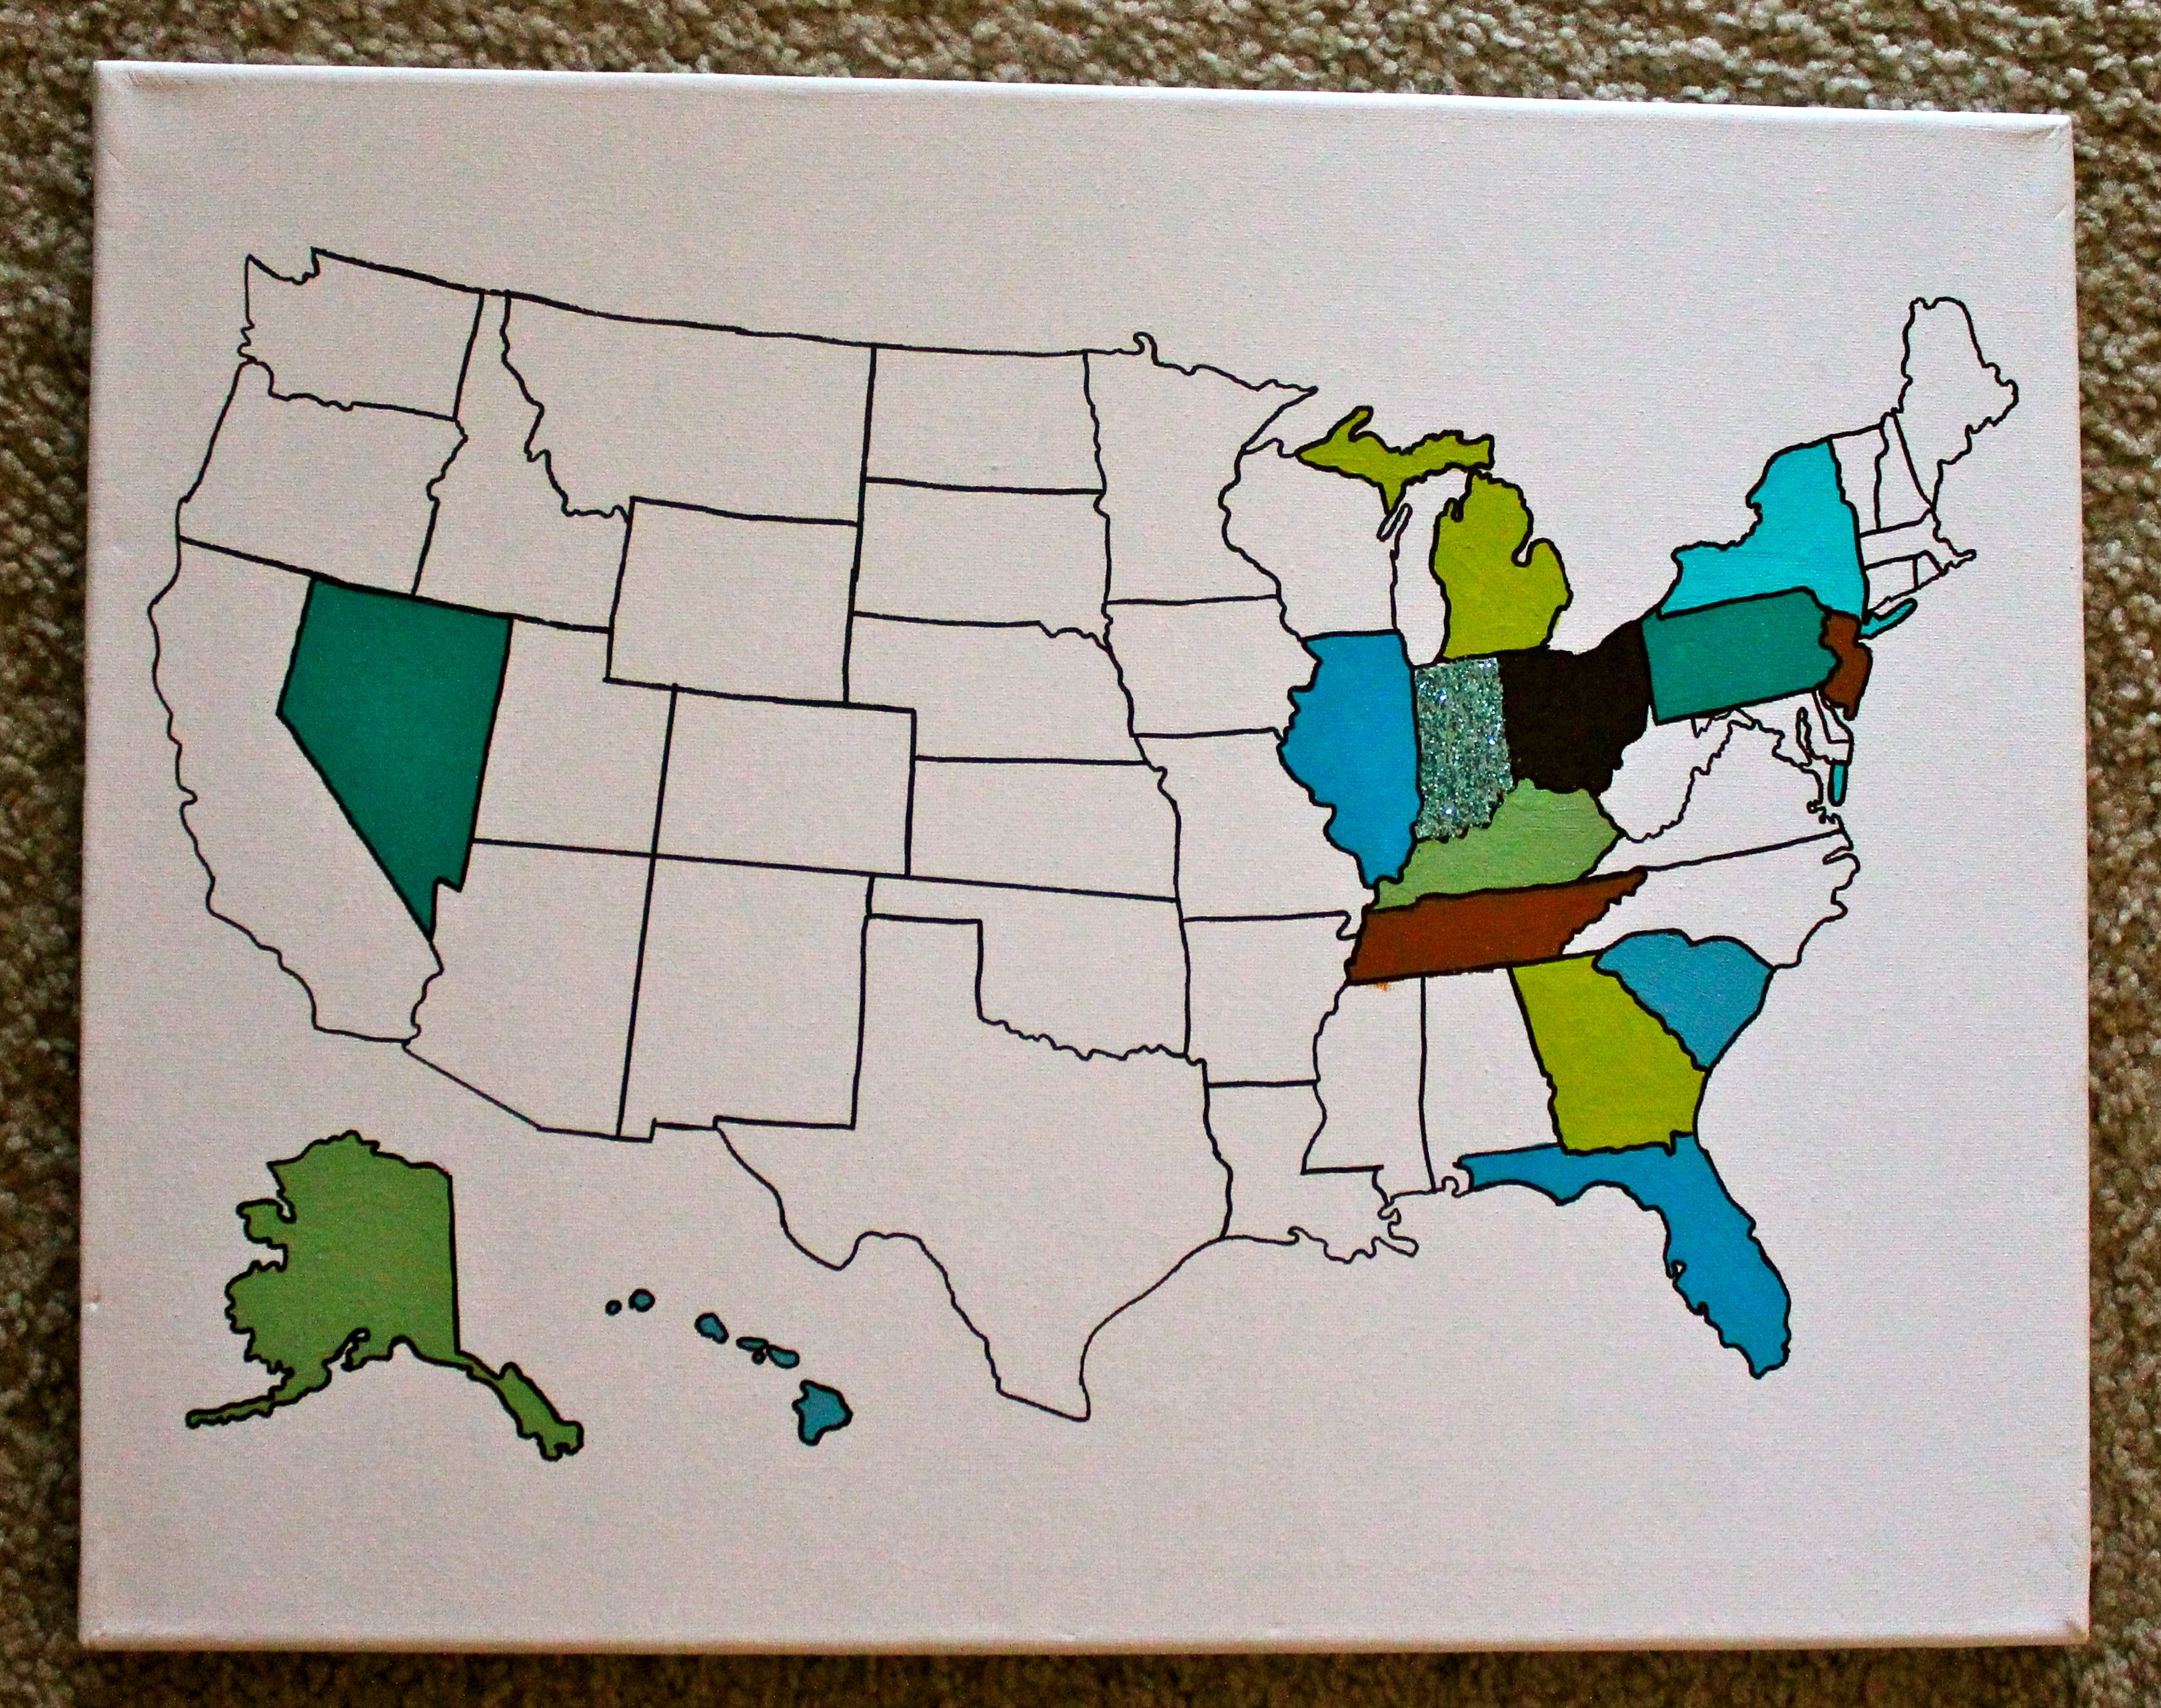 trace a map of the united states with a sharpie then paint the